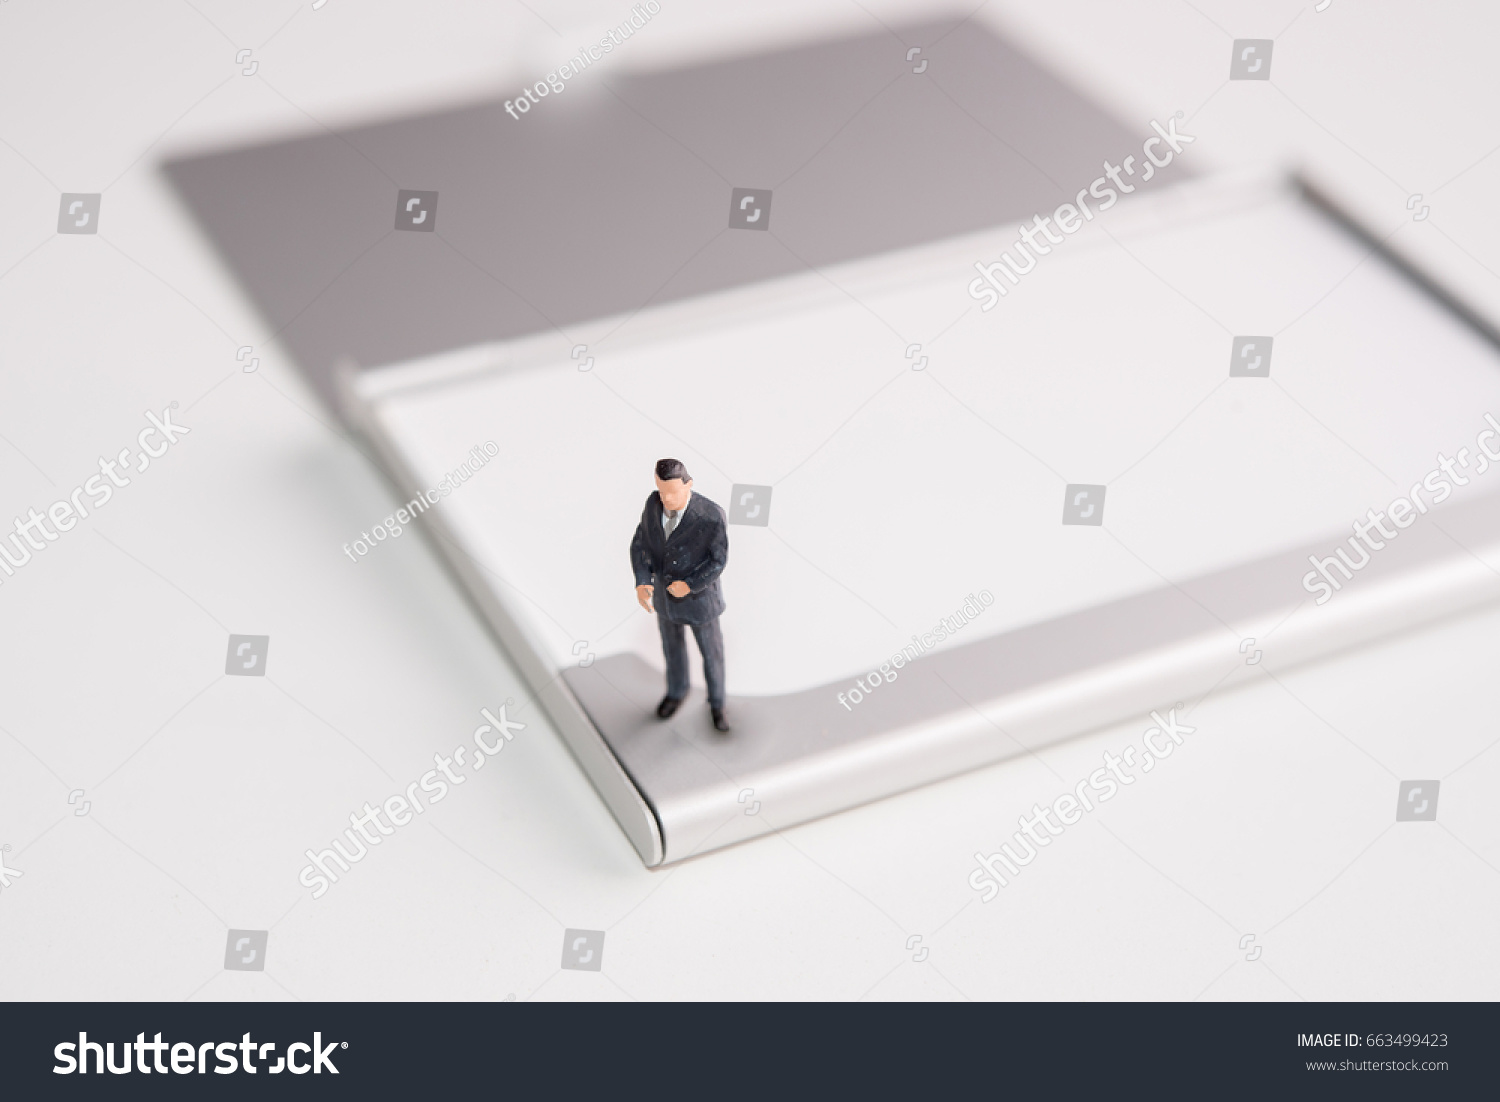 Miniature Figure Business Man Stand On Stock Photo 663499423 ...